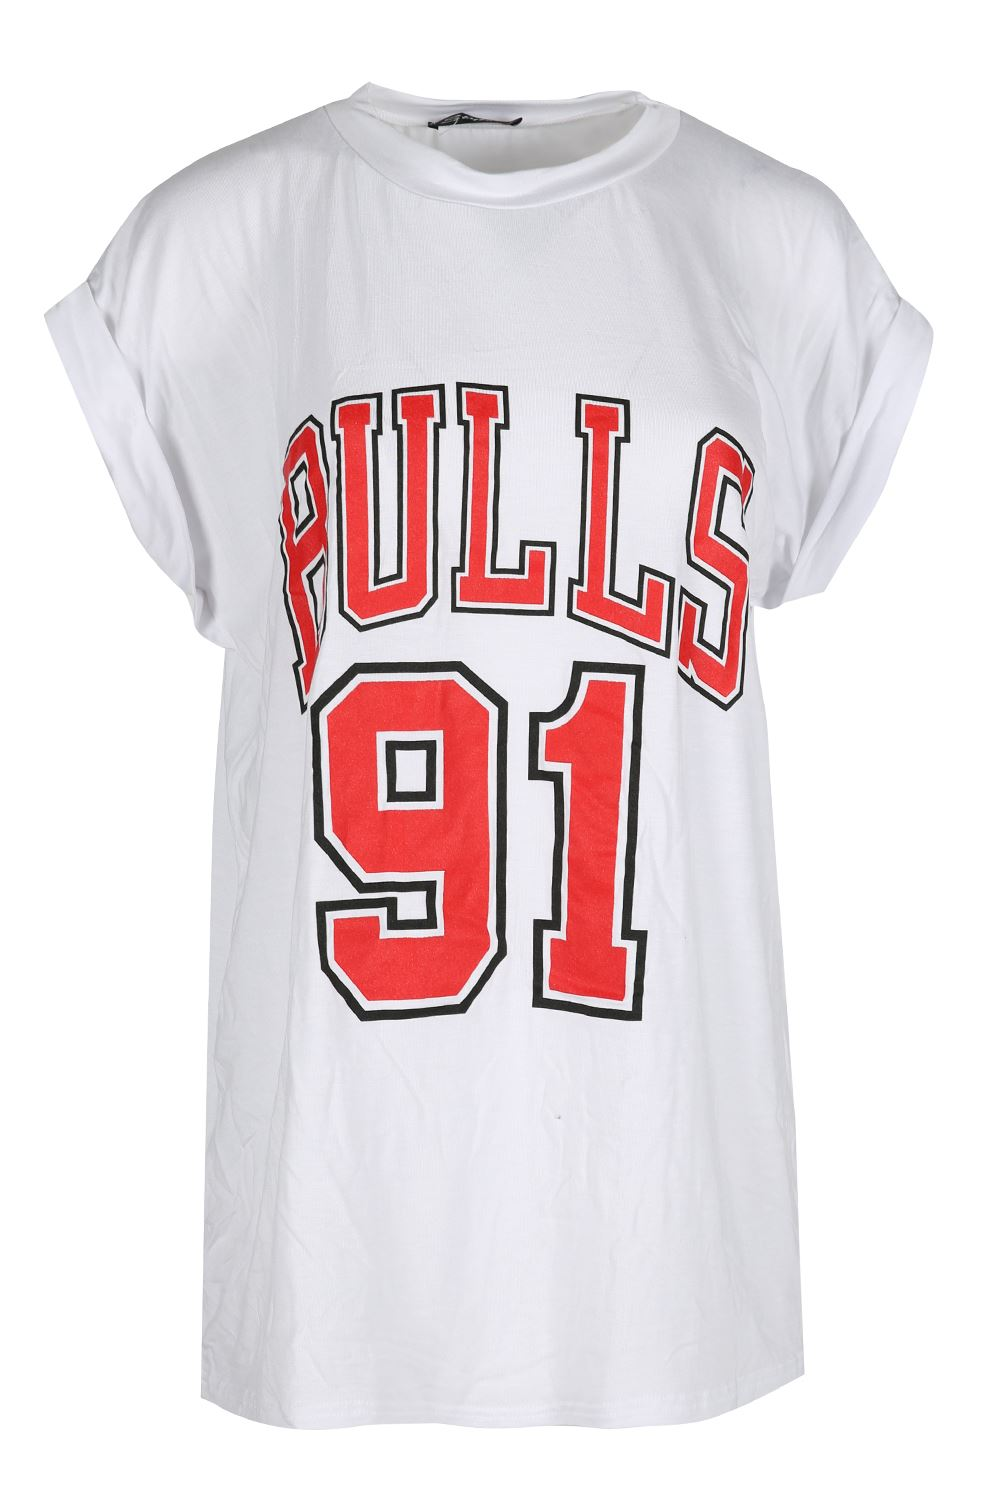 ... Bulls-91-Print-Turn-Up-Cap-Sleeve-Tshirt-Womens-Round-Neck-Top-T-Shirt